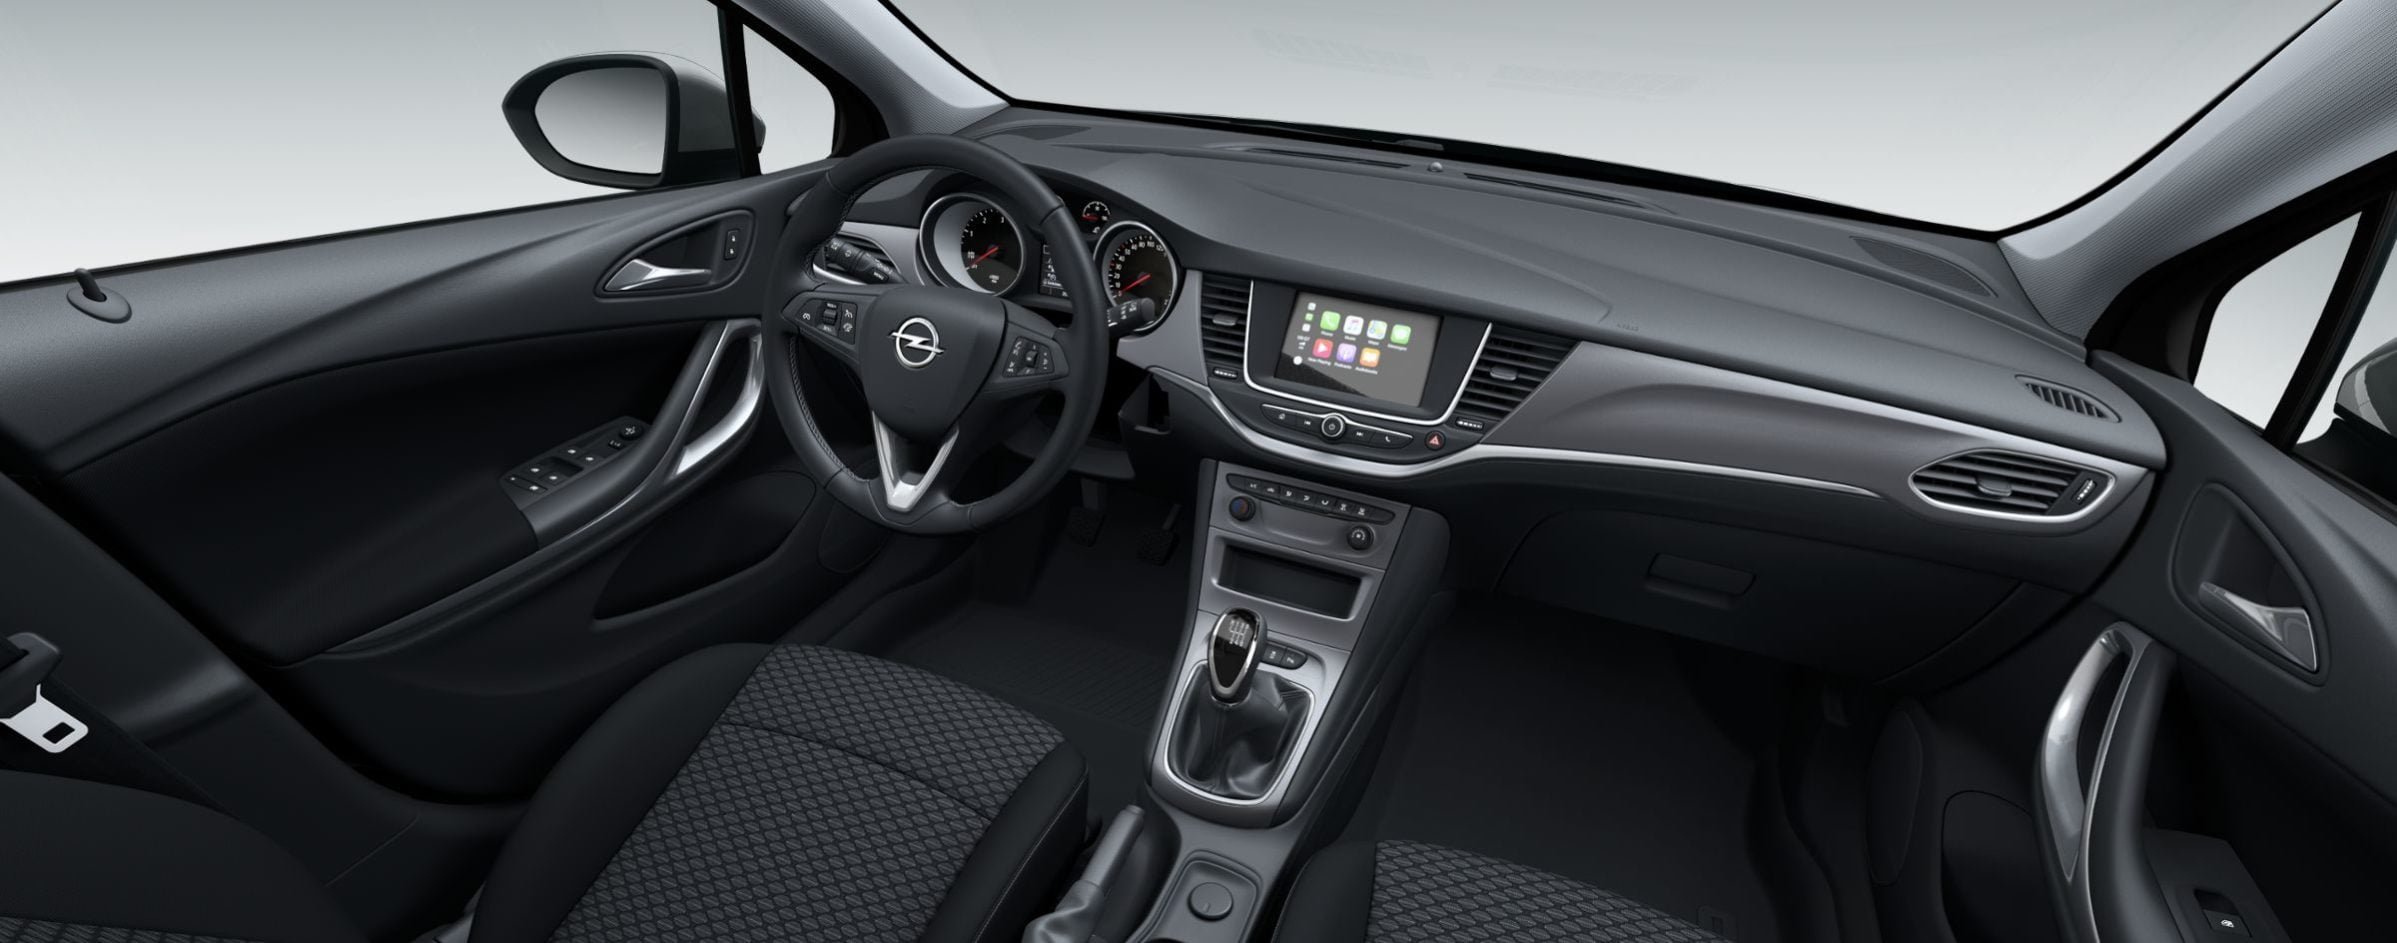 opel astra v st enjoy 1 6 cdti 110km mt6 s s pakiety. Black Bedroom Furniture Sets. Home Design Ideas